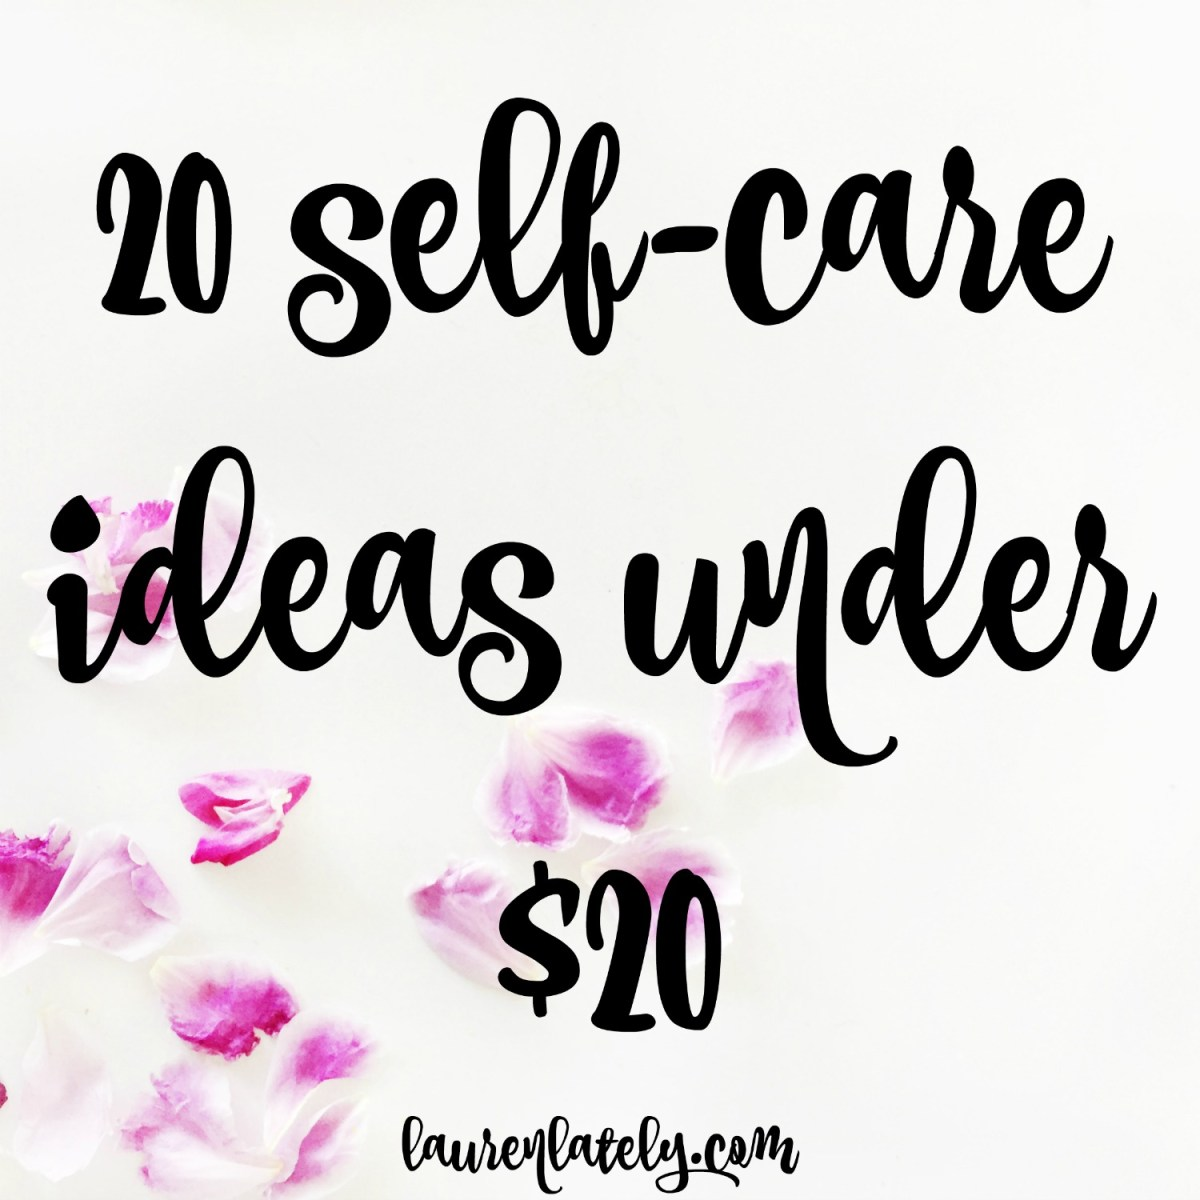 20 self-care ideas under $20